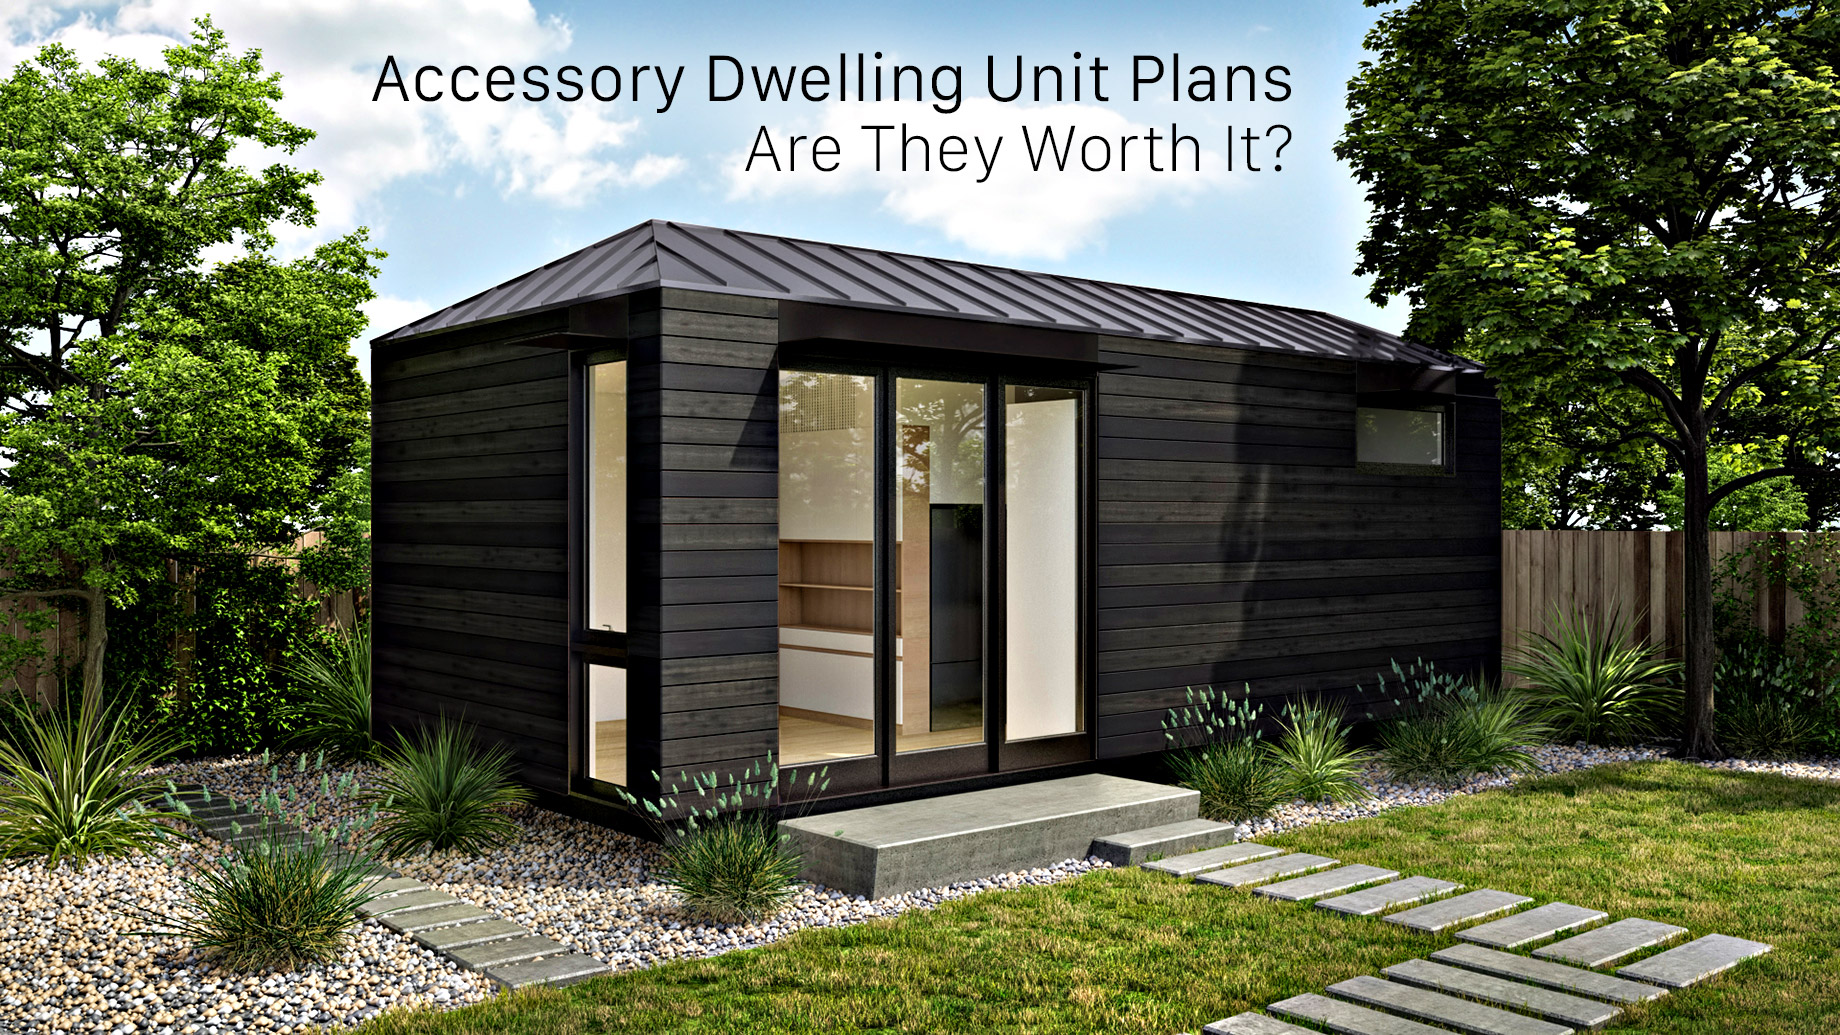 Accessory Dwelling Unit Plans - Are They Worth It?